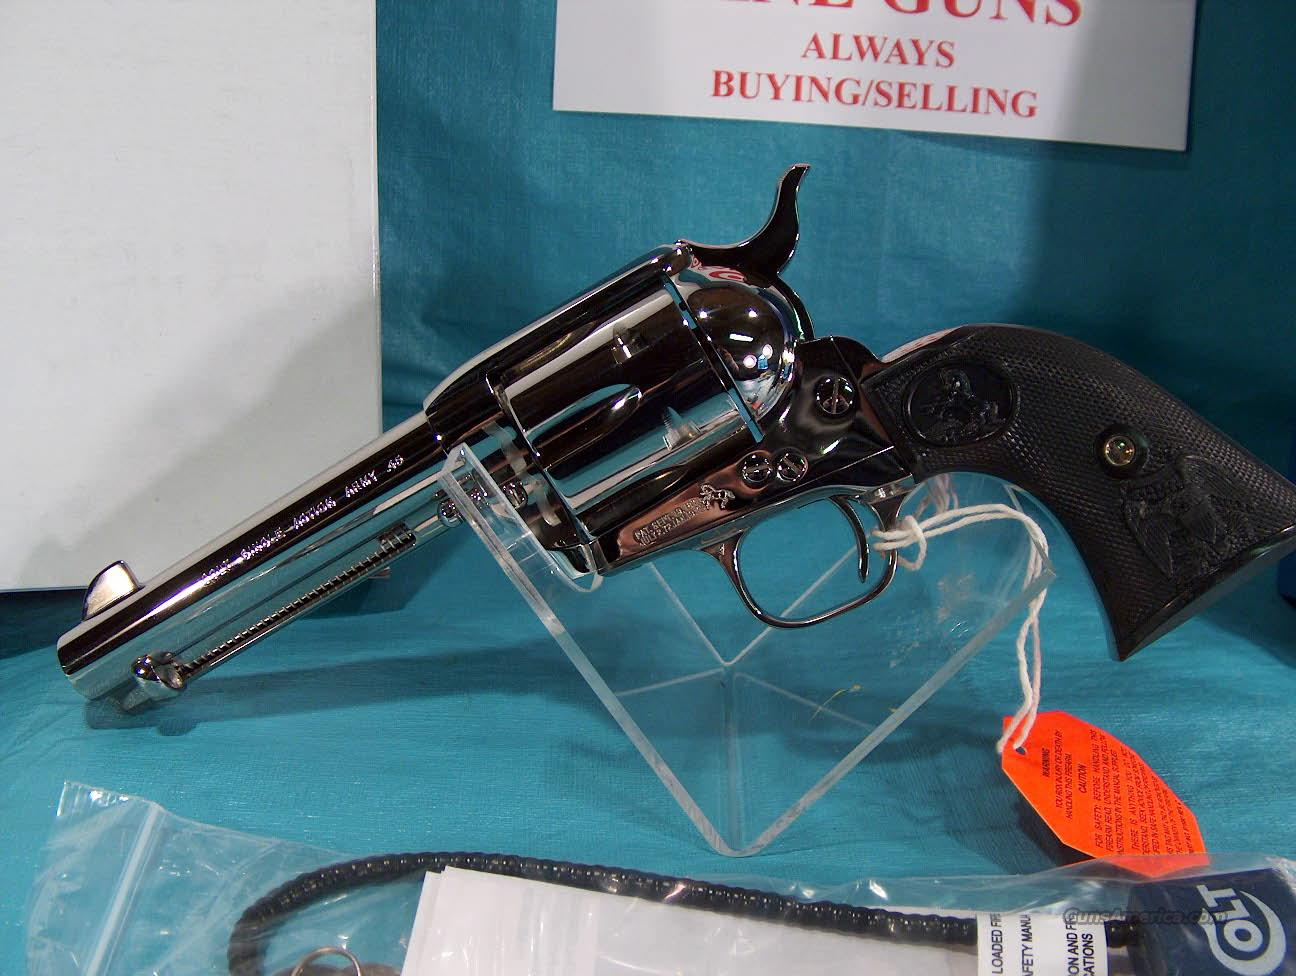 "COLT - NICKEL SINGLE ACTION ARMY - MODEL P1841 - 4.75"" BARREL - NICKEL FINISH - 45 COLT CAL  Guns > Pistols > Colt Single Action Revolvers - 3rd Gen."